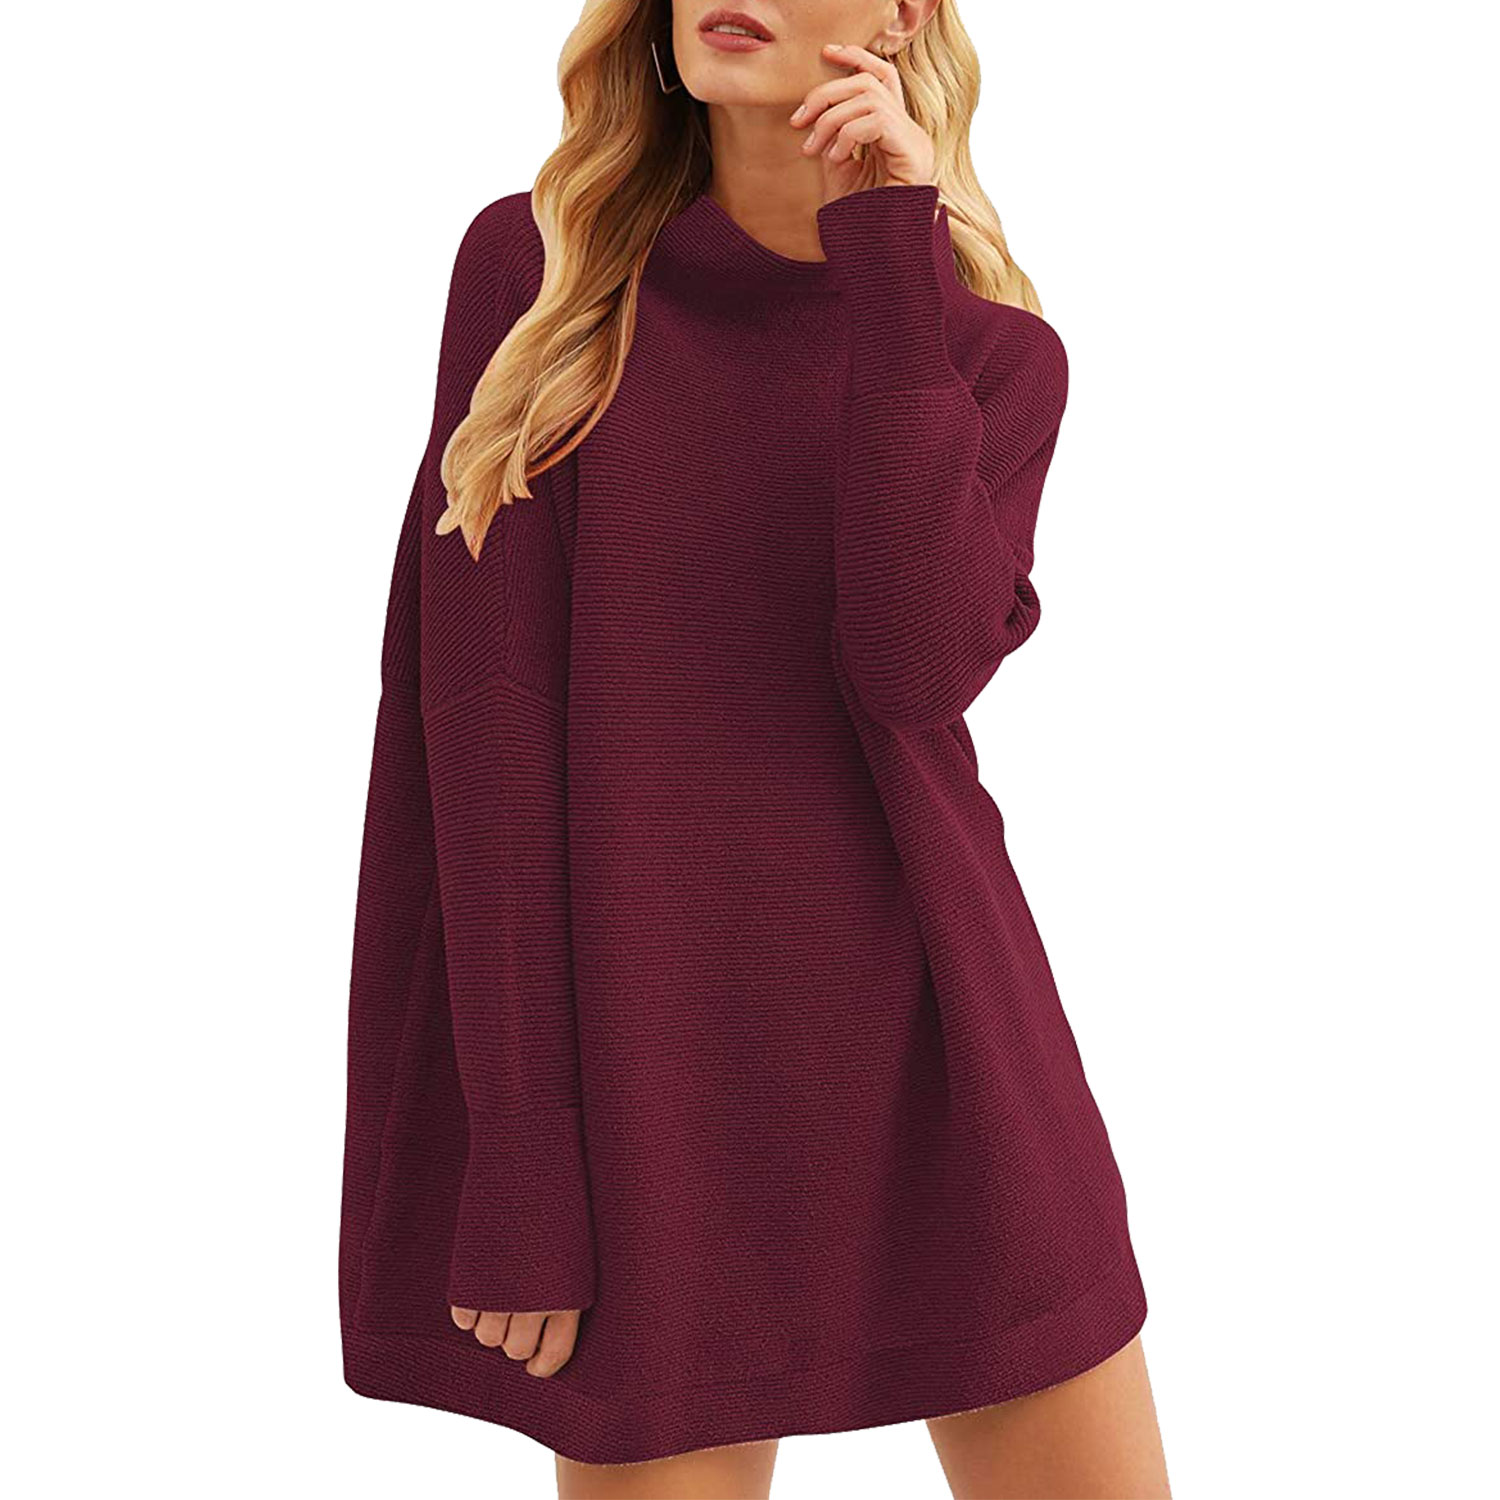 women's casual turtleneck batwing sleeve slouchy oversized ribbed knit tunic sweaters pink